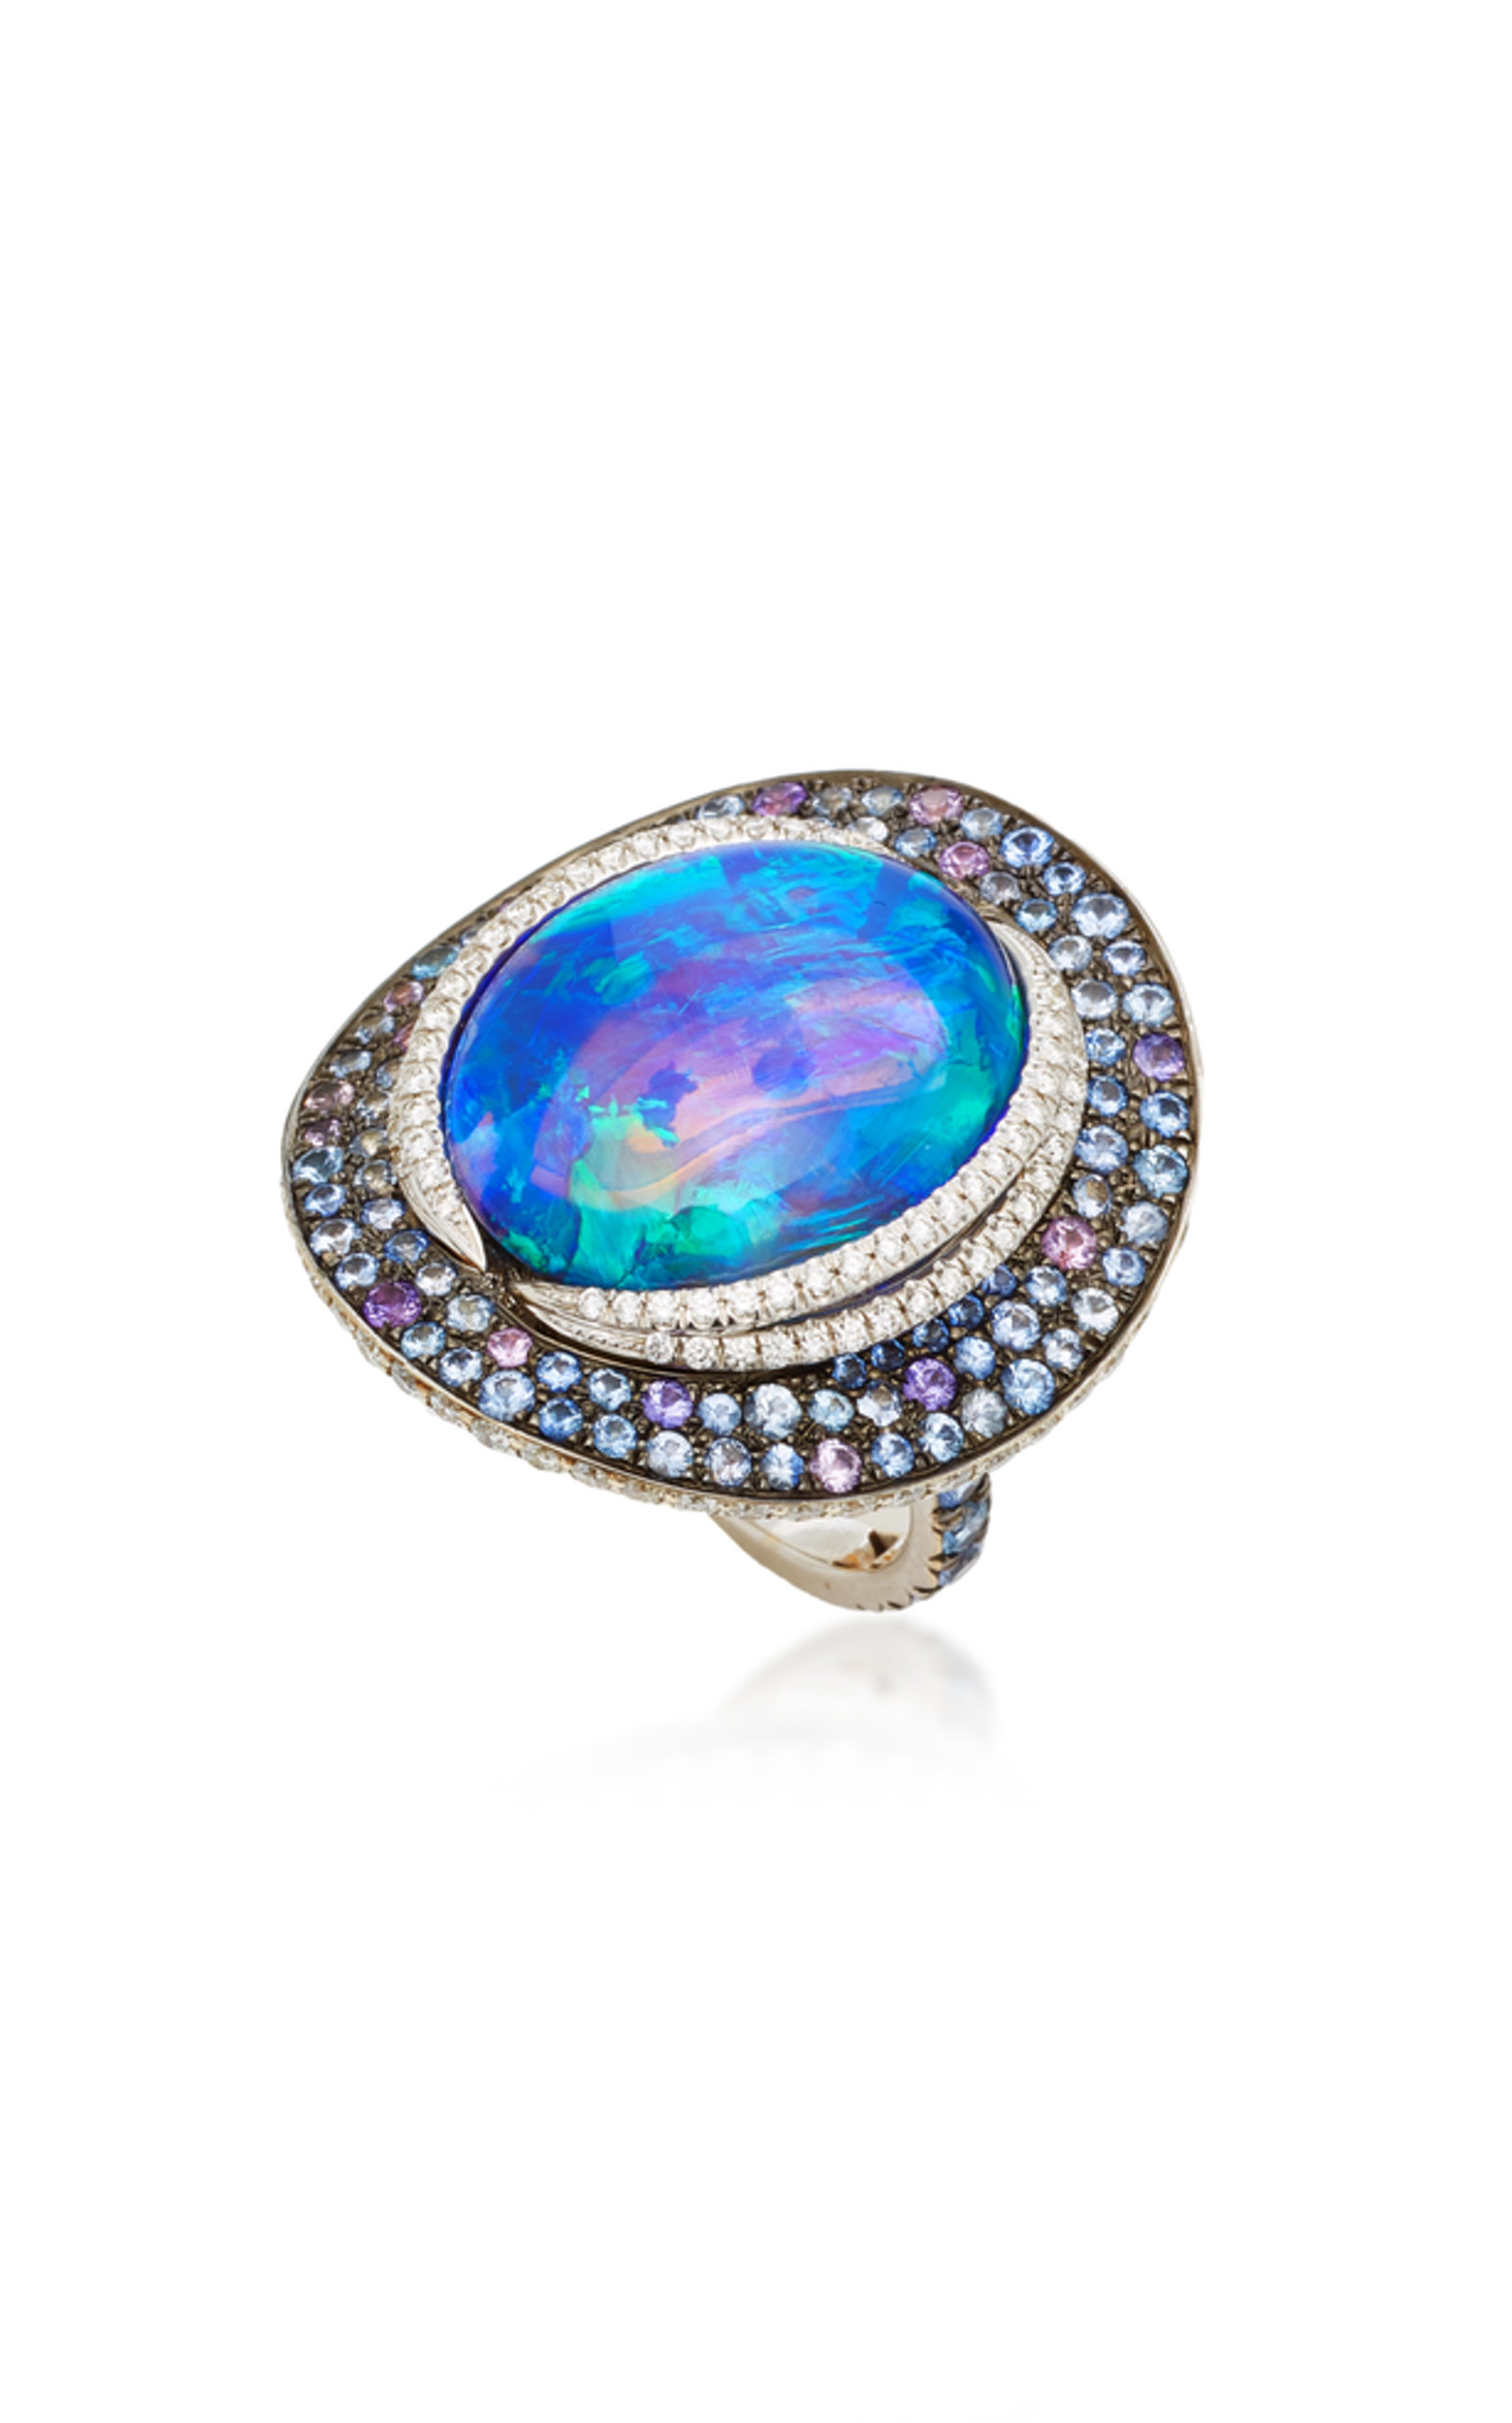 One-Of-A-Kind Black Opal Ring Katherine Jetter For Nice For Sale Sale Get Authentic yF7td